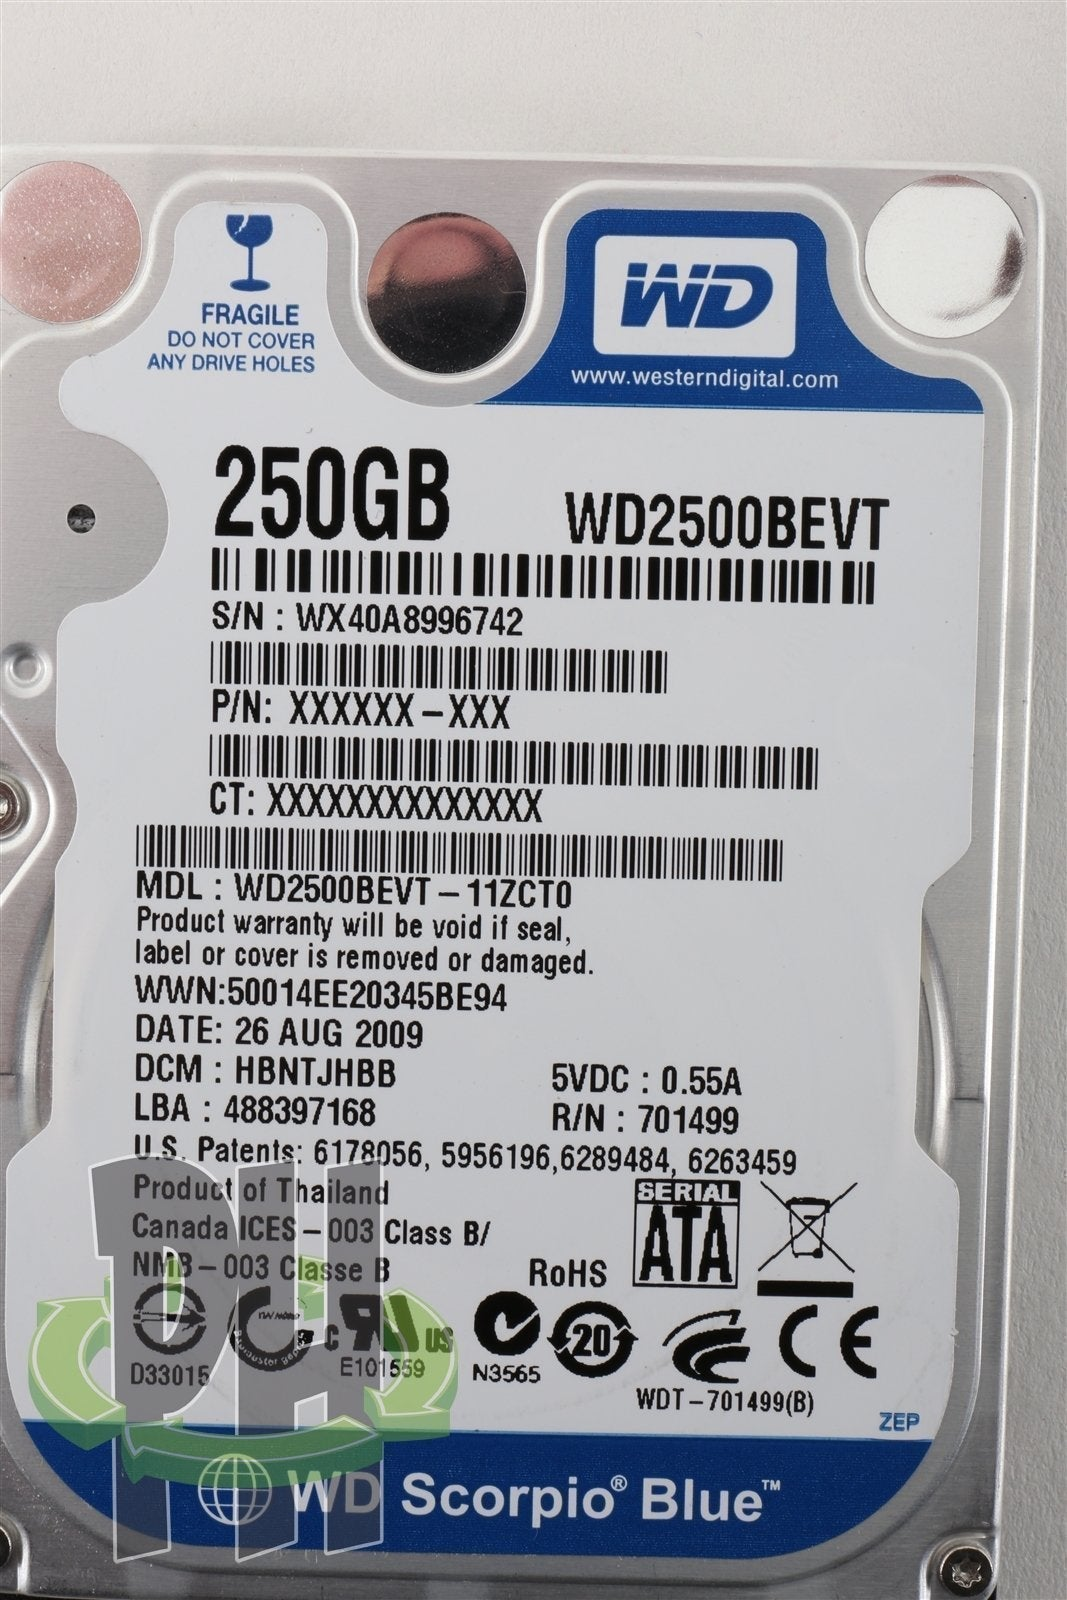 "Western Digital WD Scorpio Blue 2.5"" 250GB 5400 RPM Hard Drive HDD - WD2500BEVT"